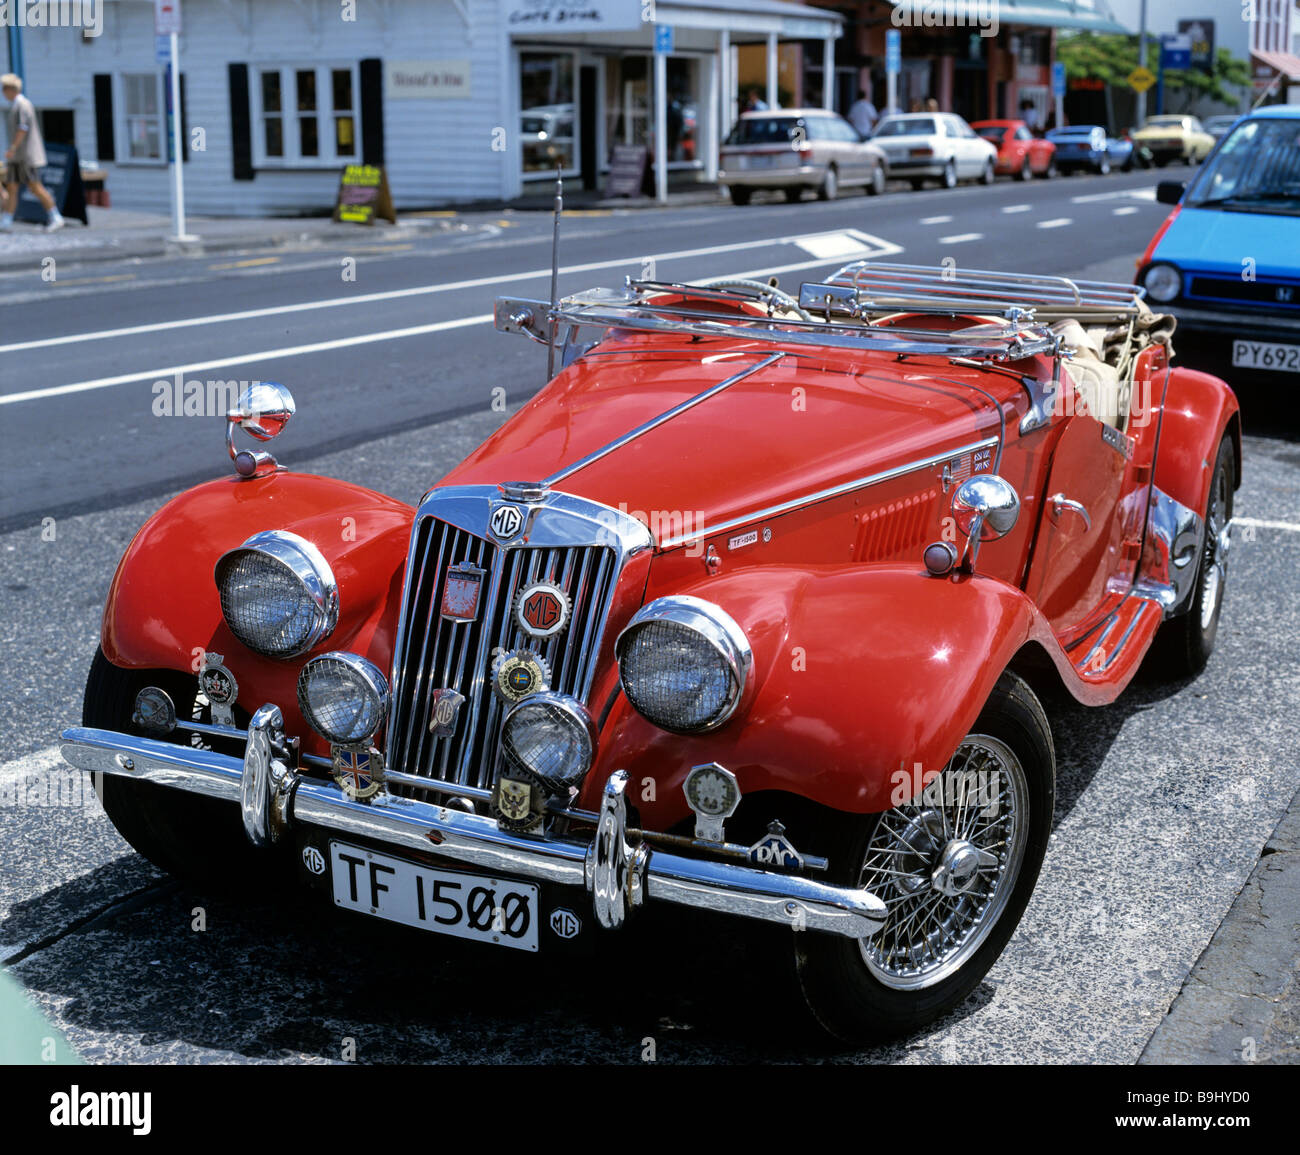 MG TF 1500, Vintage Car, Sports Car In Auckland, North